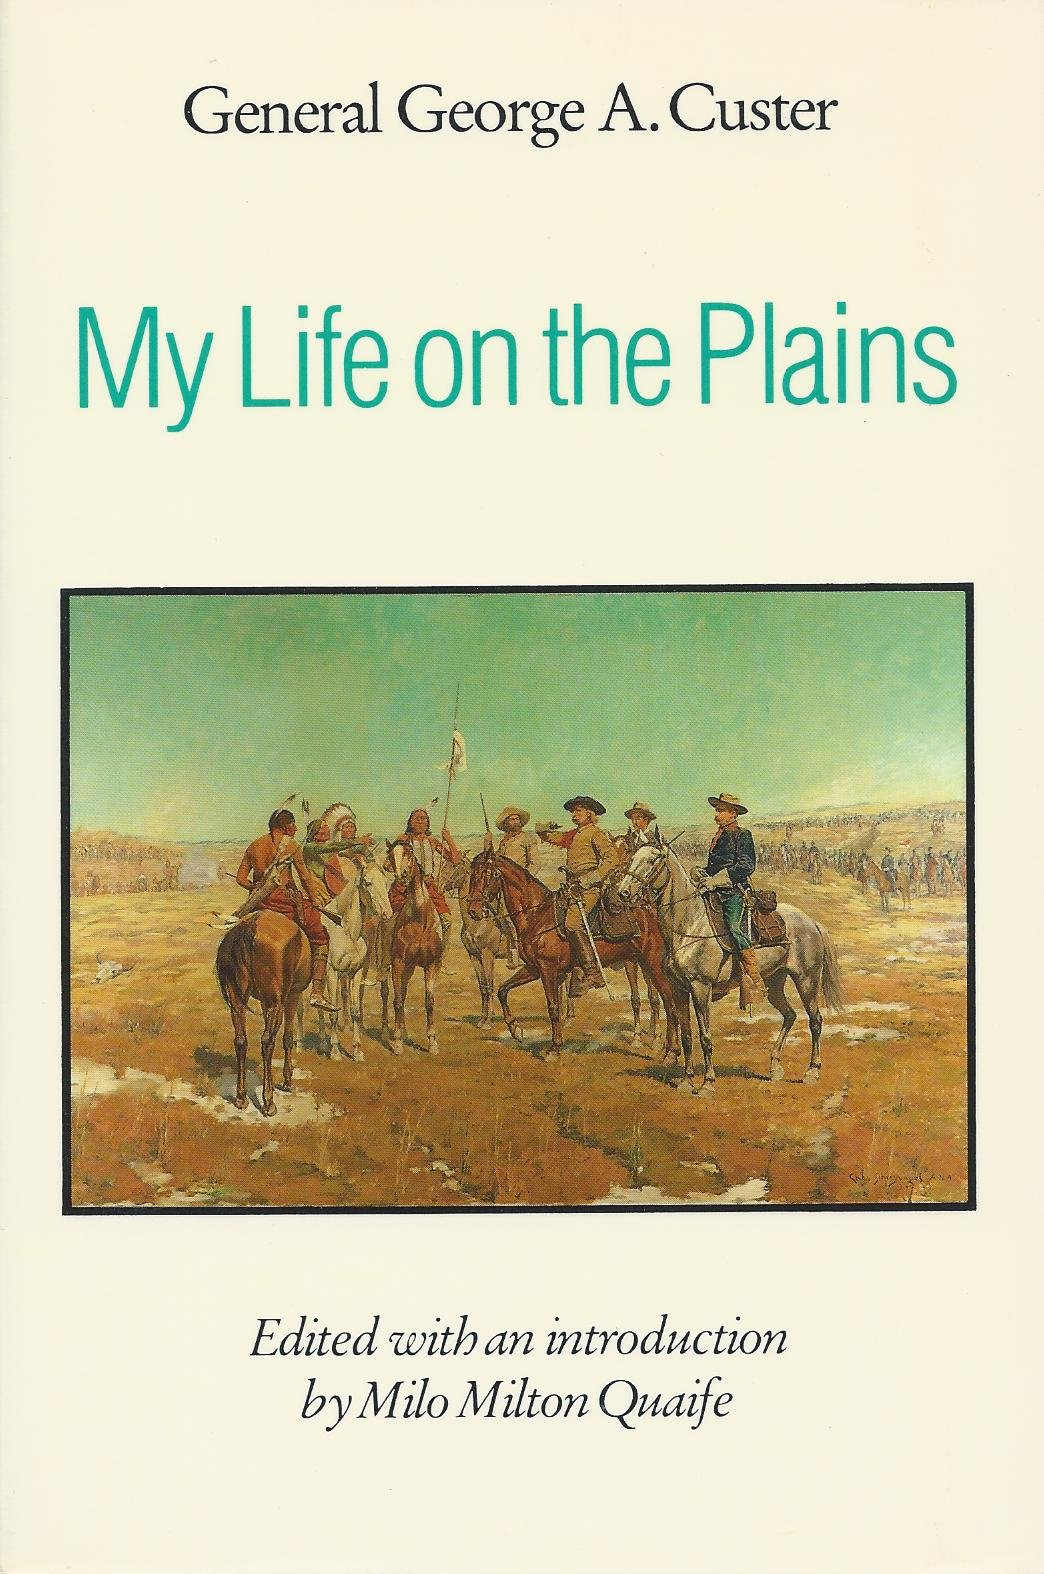 My Life on the Plains (A Bison Book), General George A. Custer